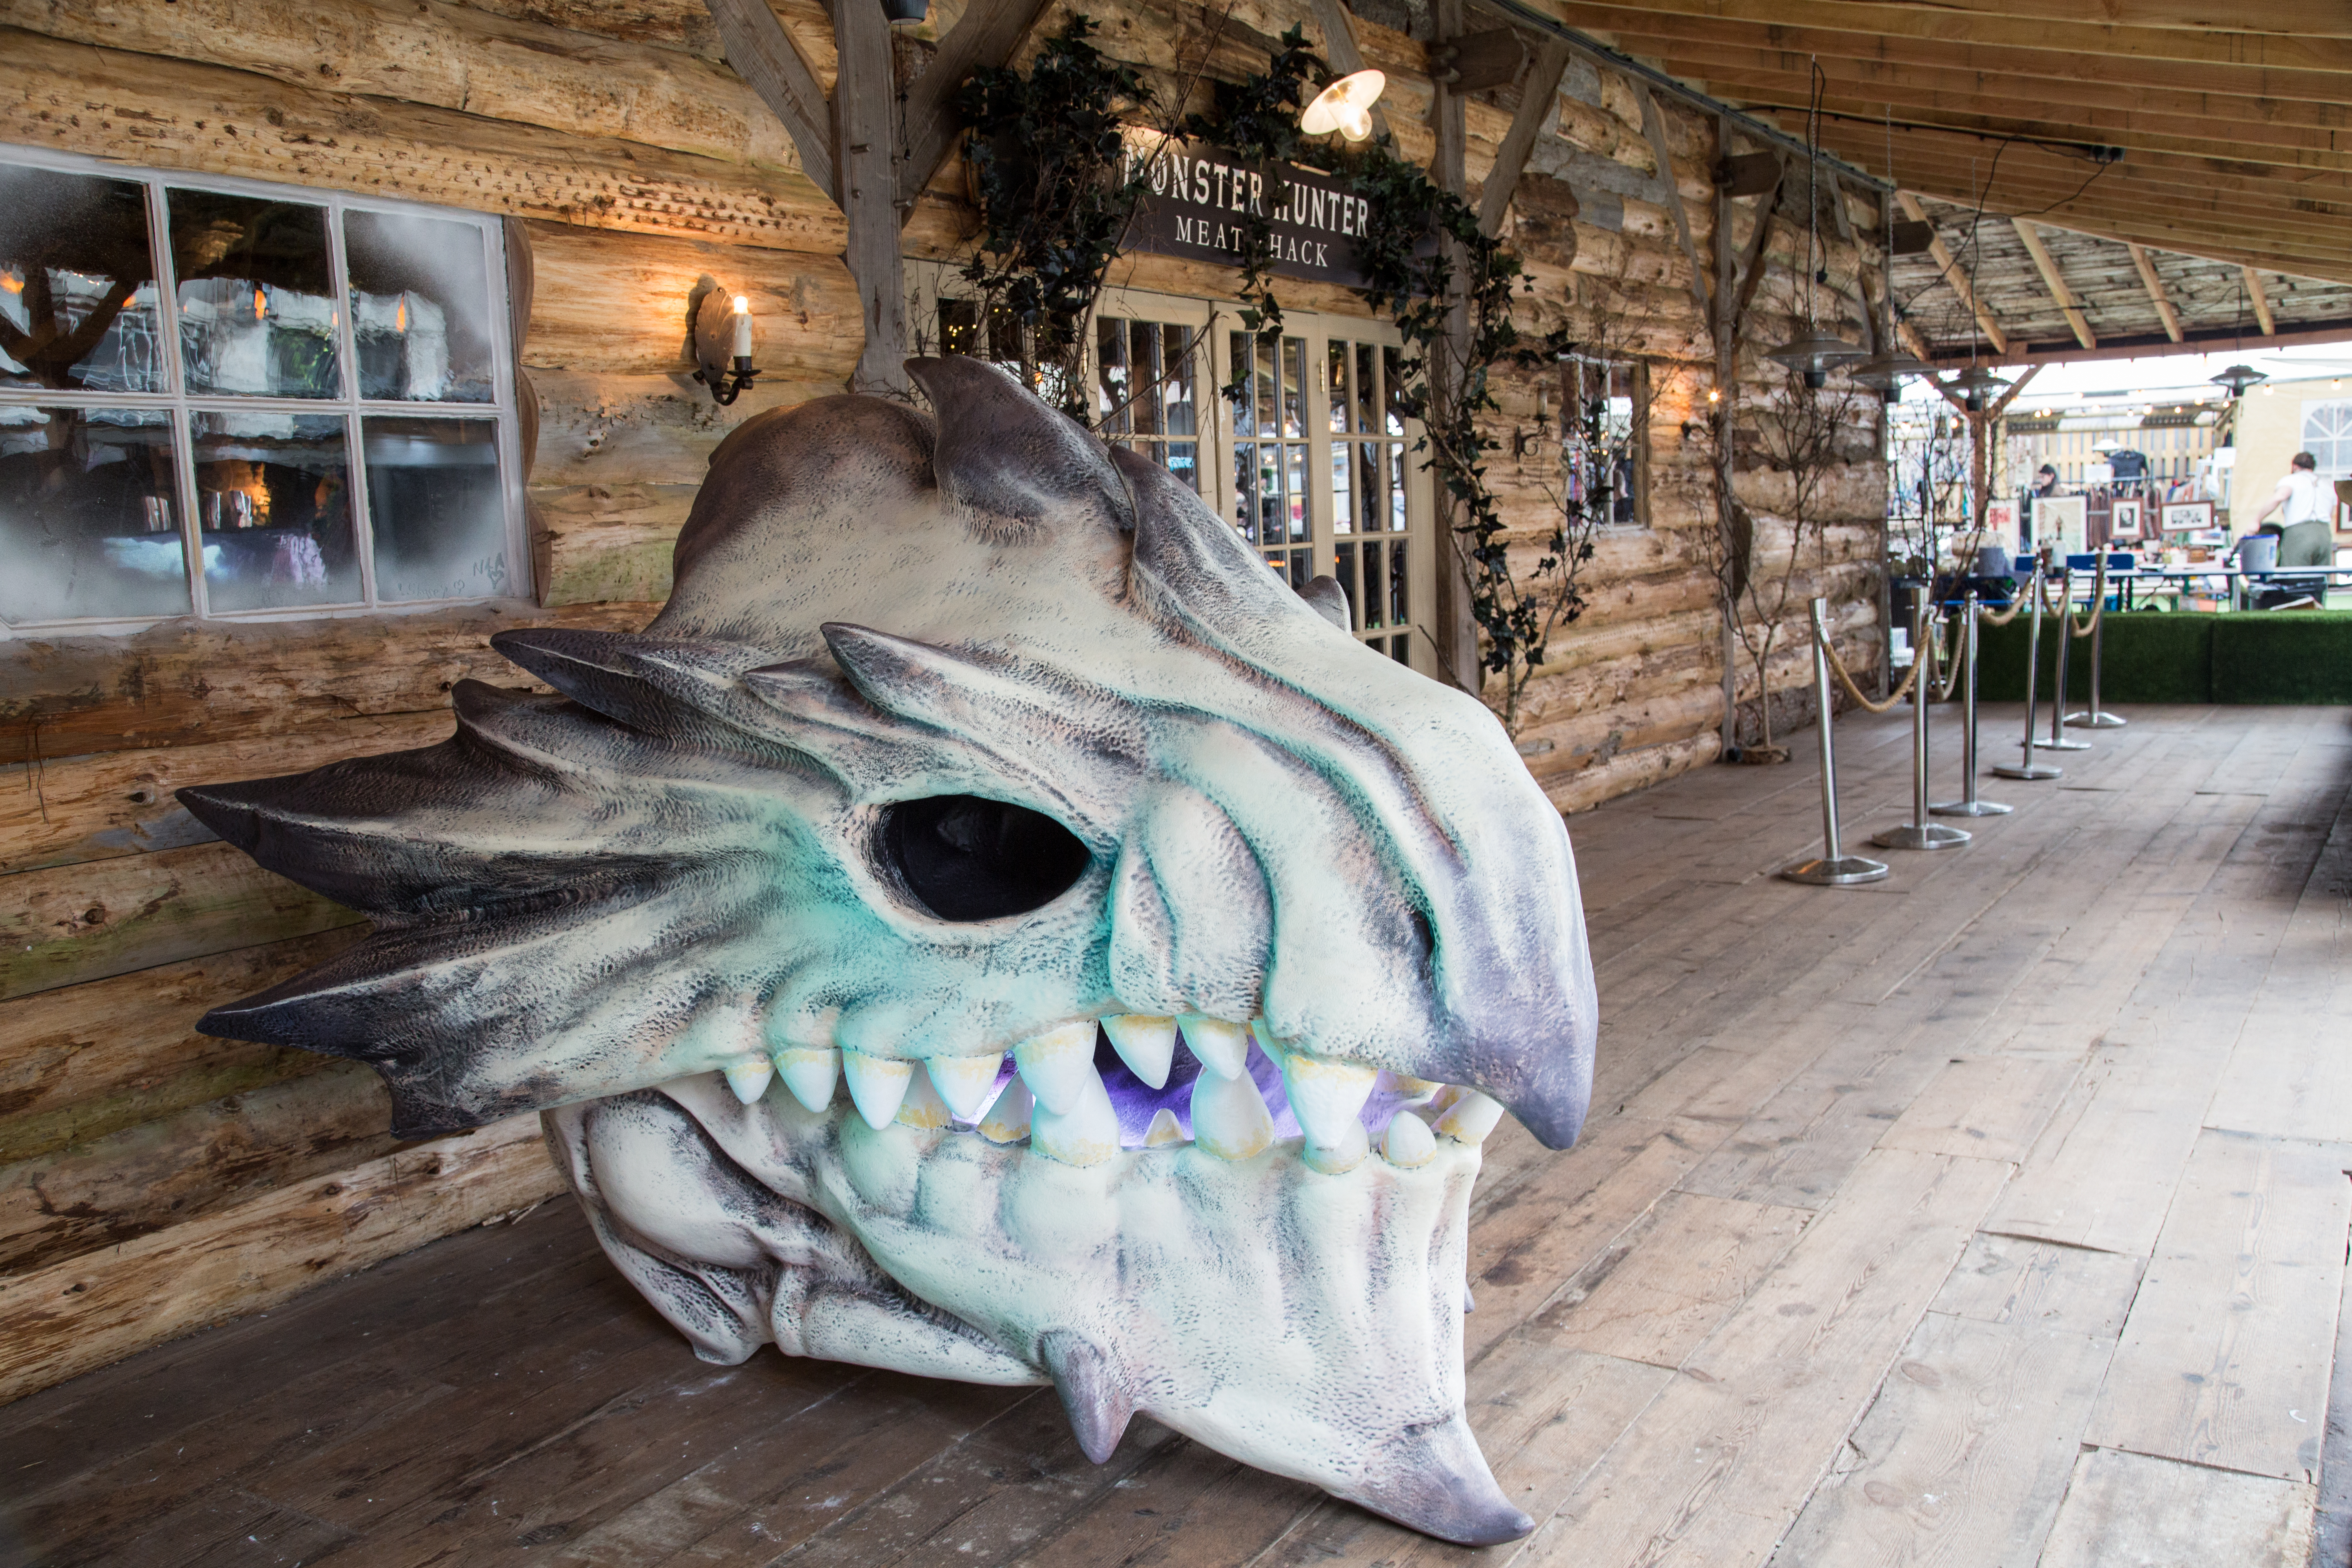 A bespoke giant Rathalos monster skull sits outside a restaurant pop-up in London called the Monster Hunter Meat Shack to celebrate the release of upcoming Capcom video game 'Monster Hunter: World'.